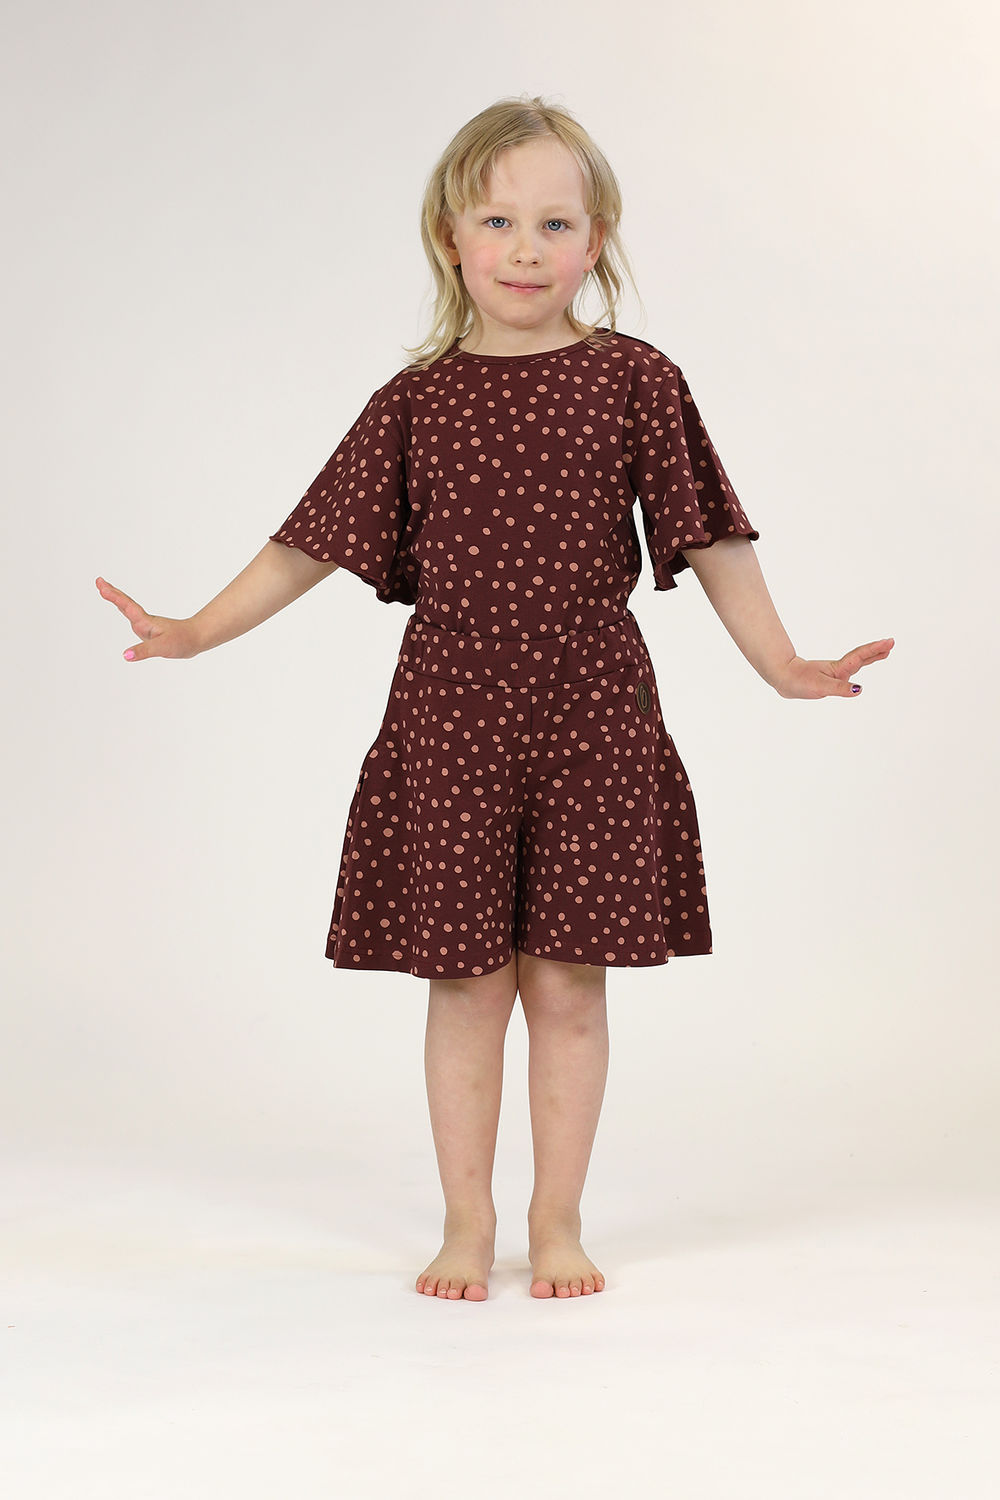 SAFARA Shortsit, Dot Brown